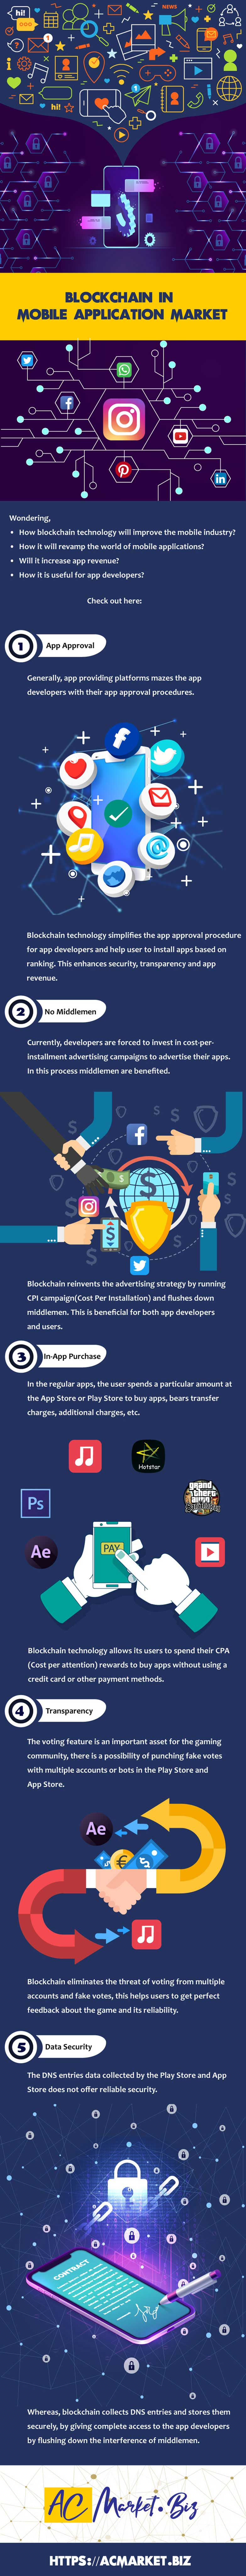 Infographic Blockchain In Mobile Application Market